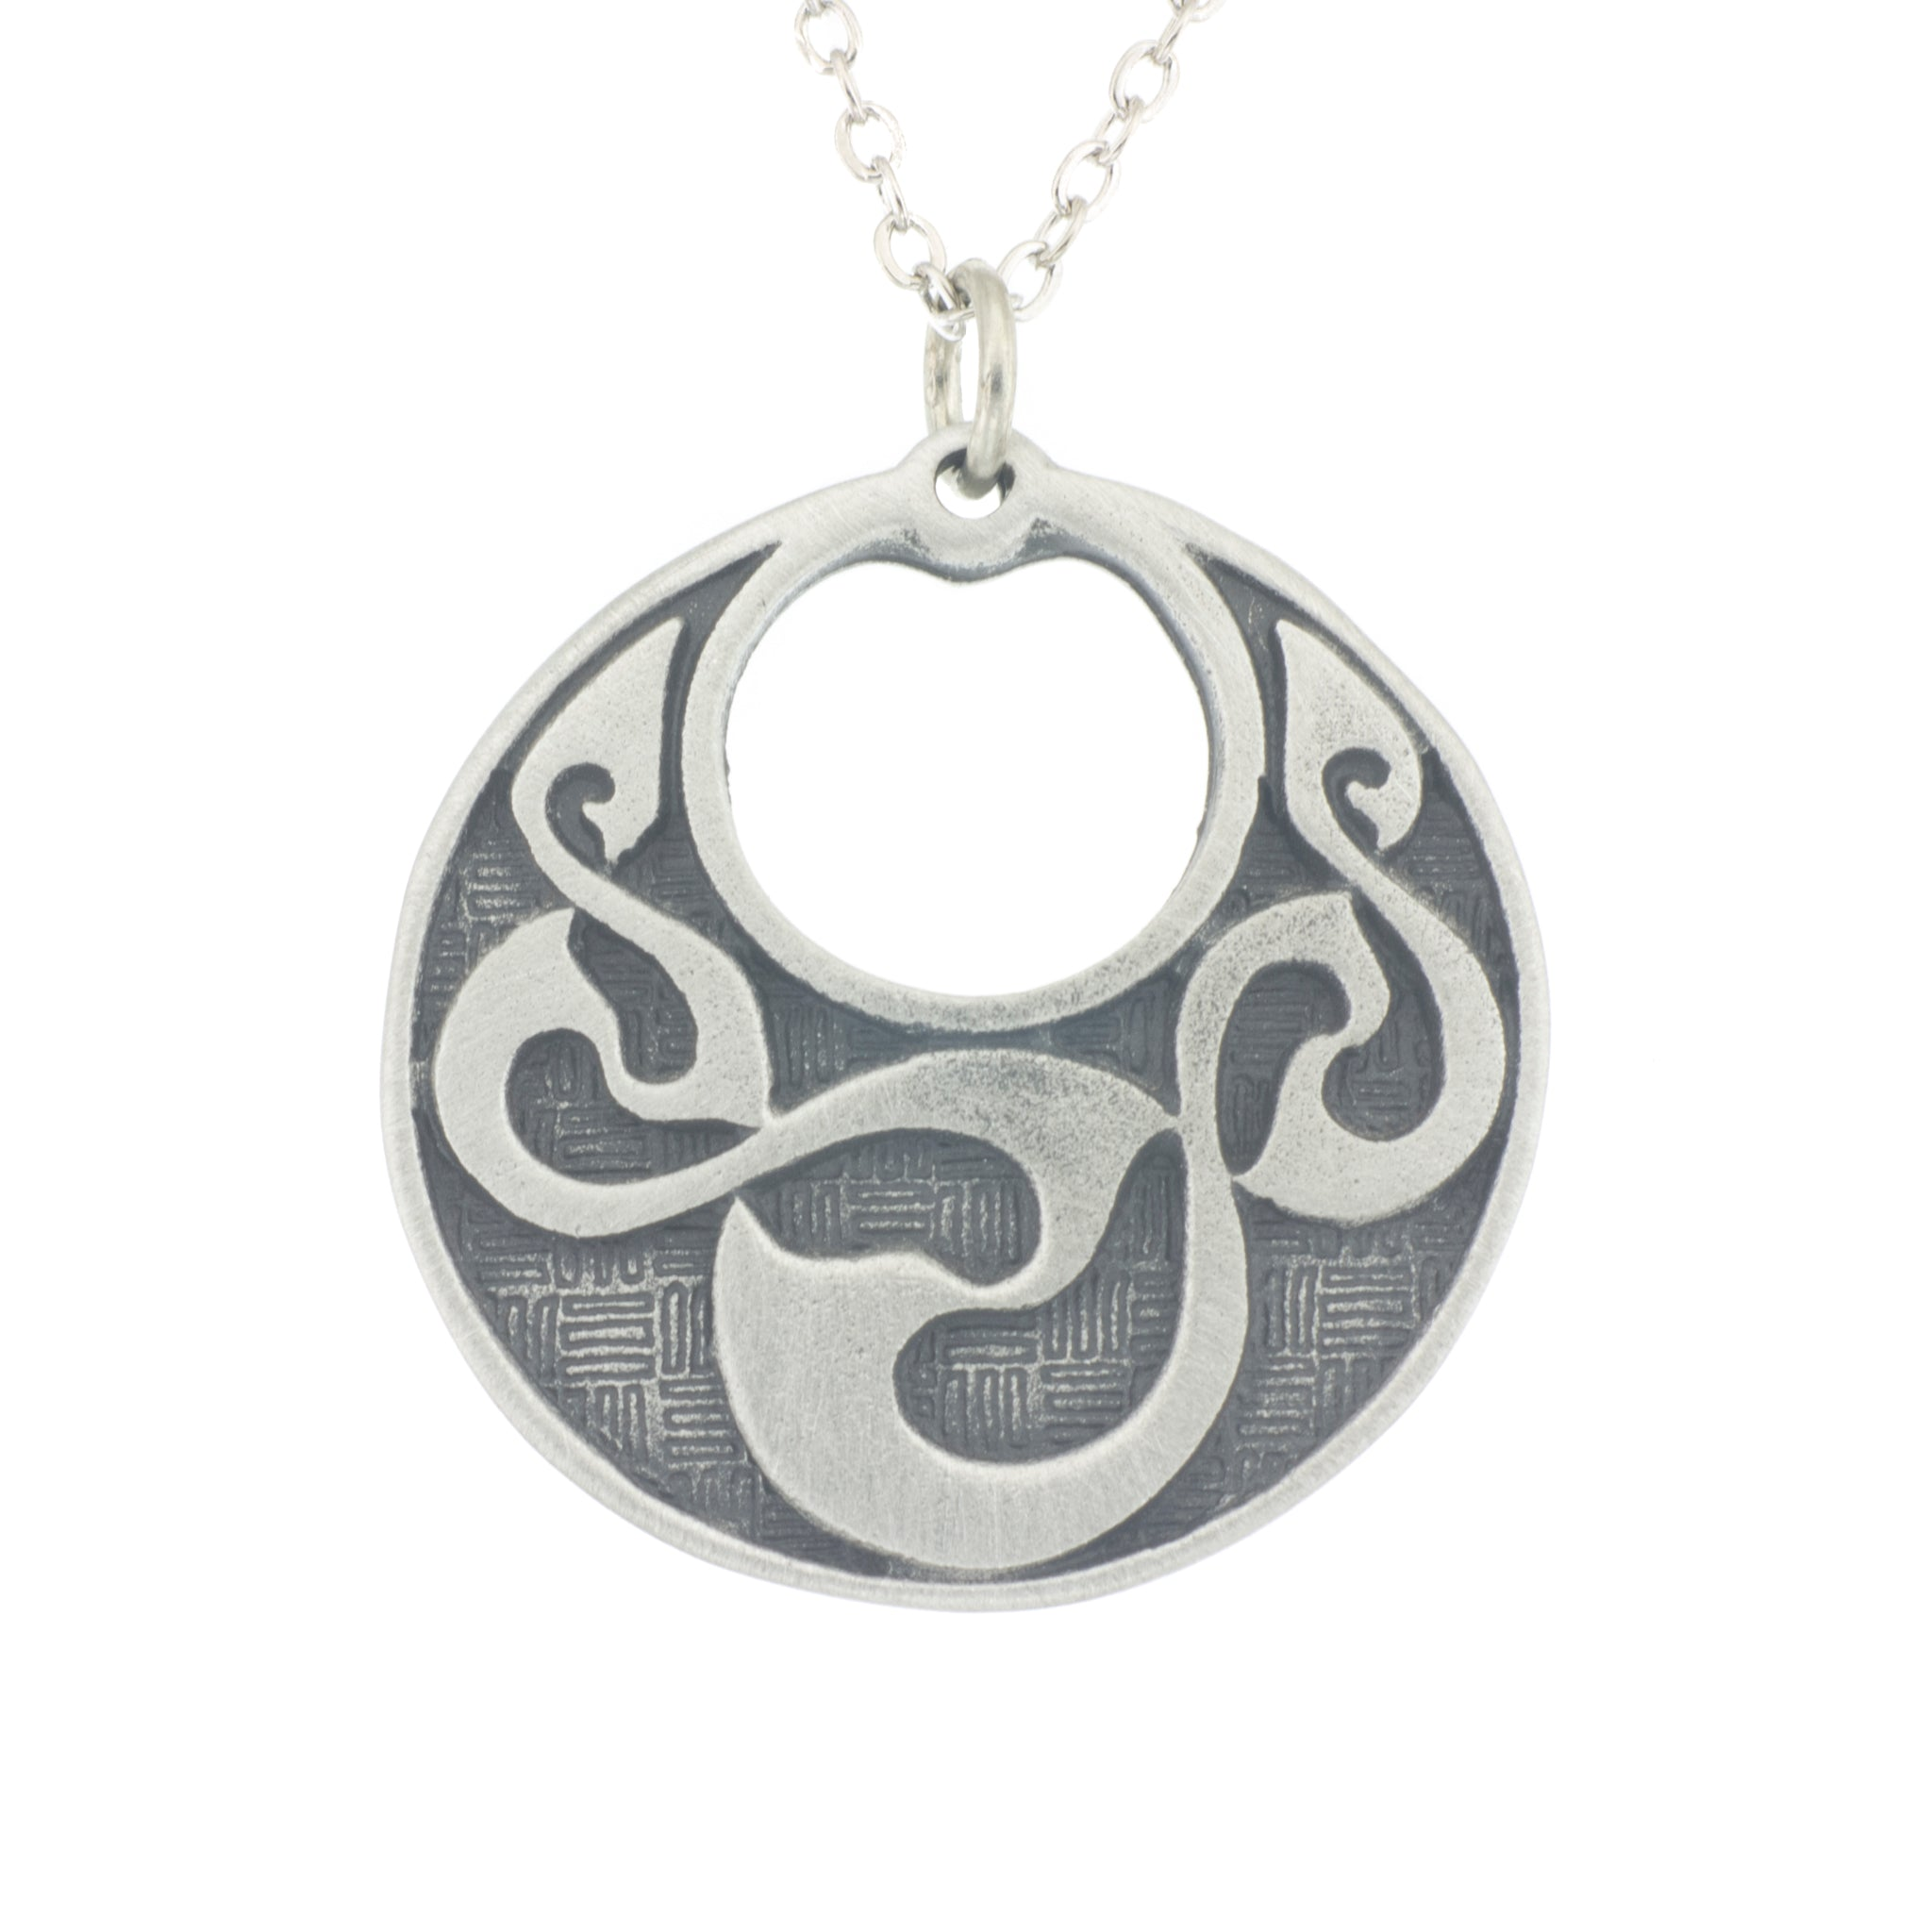 brian triple beautiful staic irish jewelry pendant this de products dainann from danainn celtic spiral features necklace the